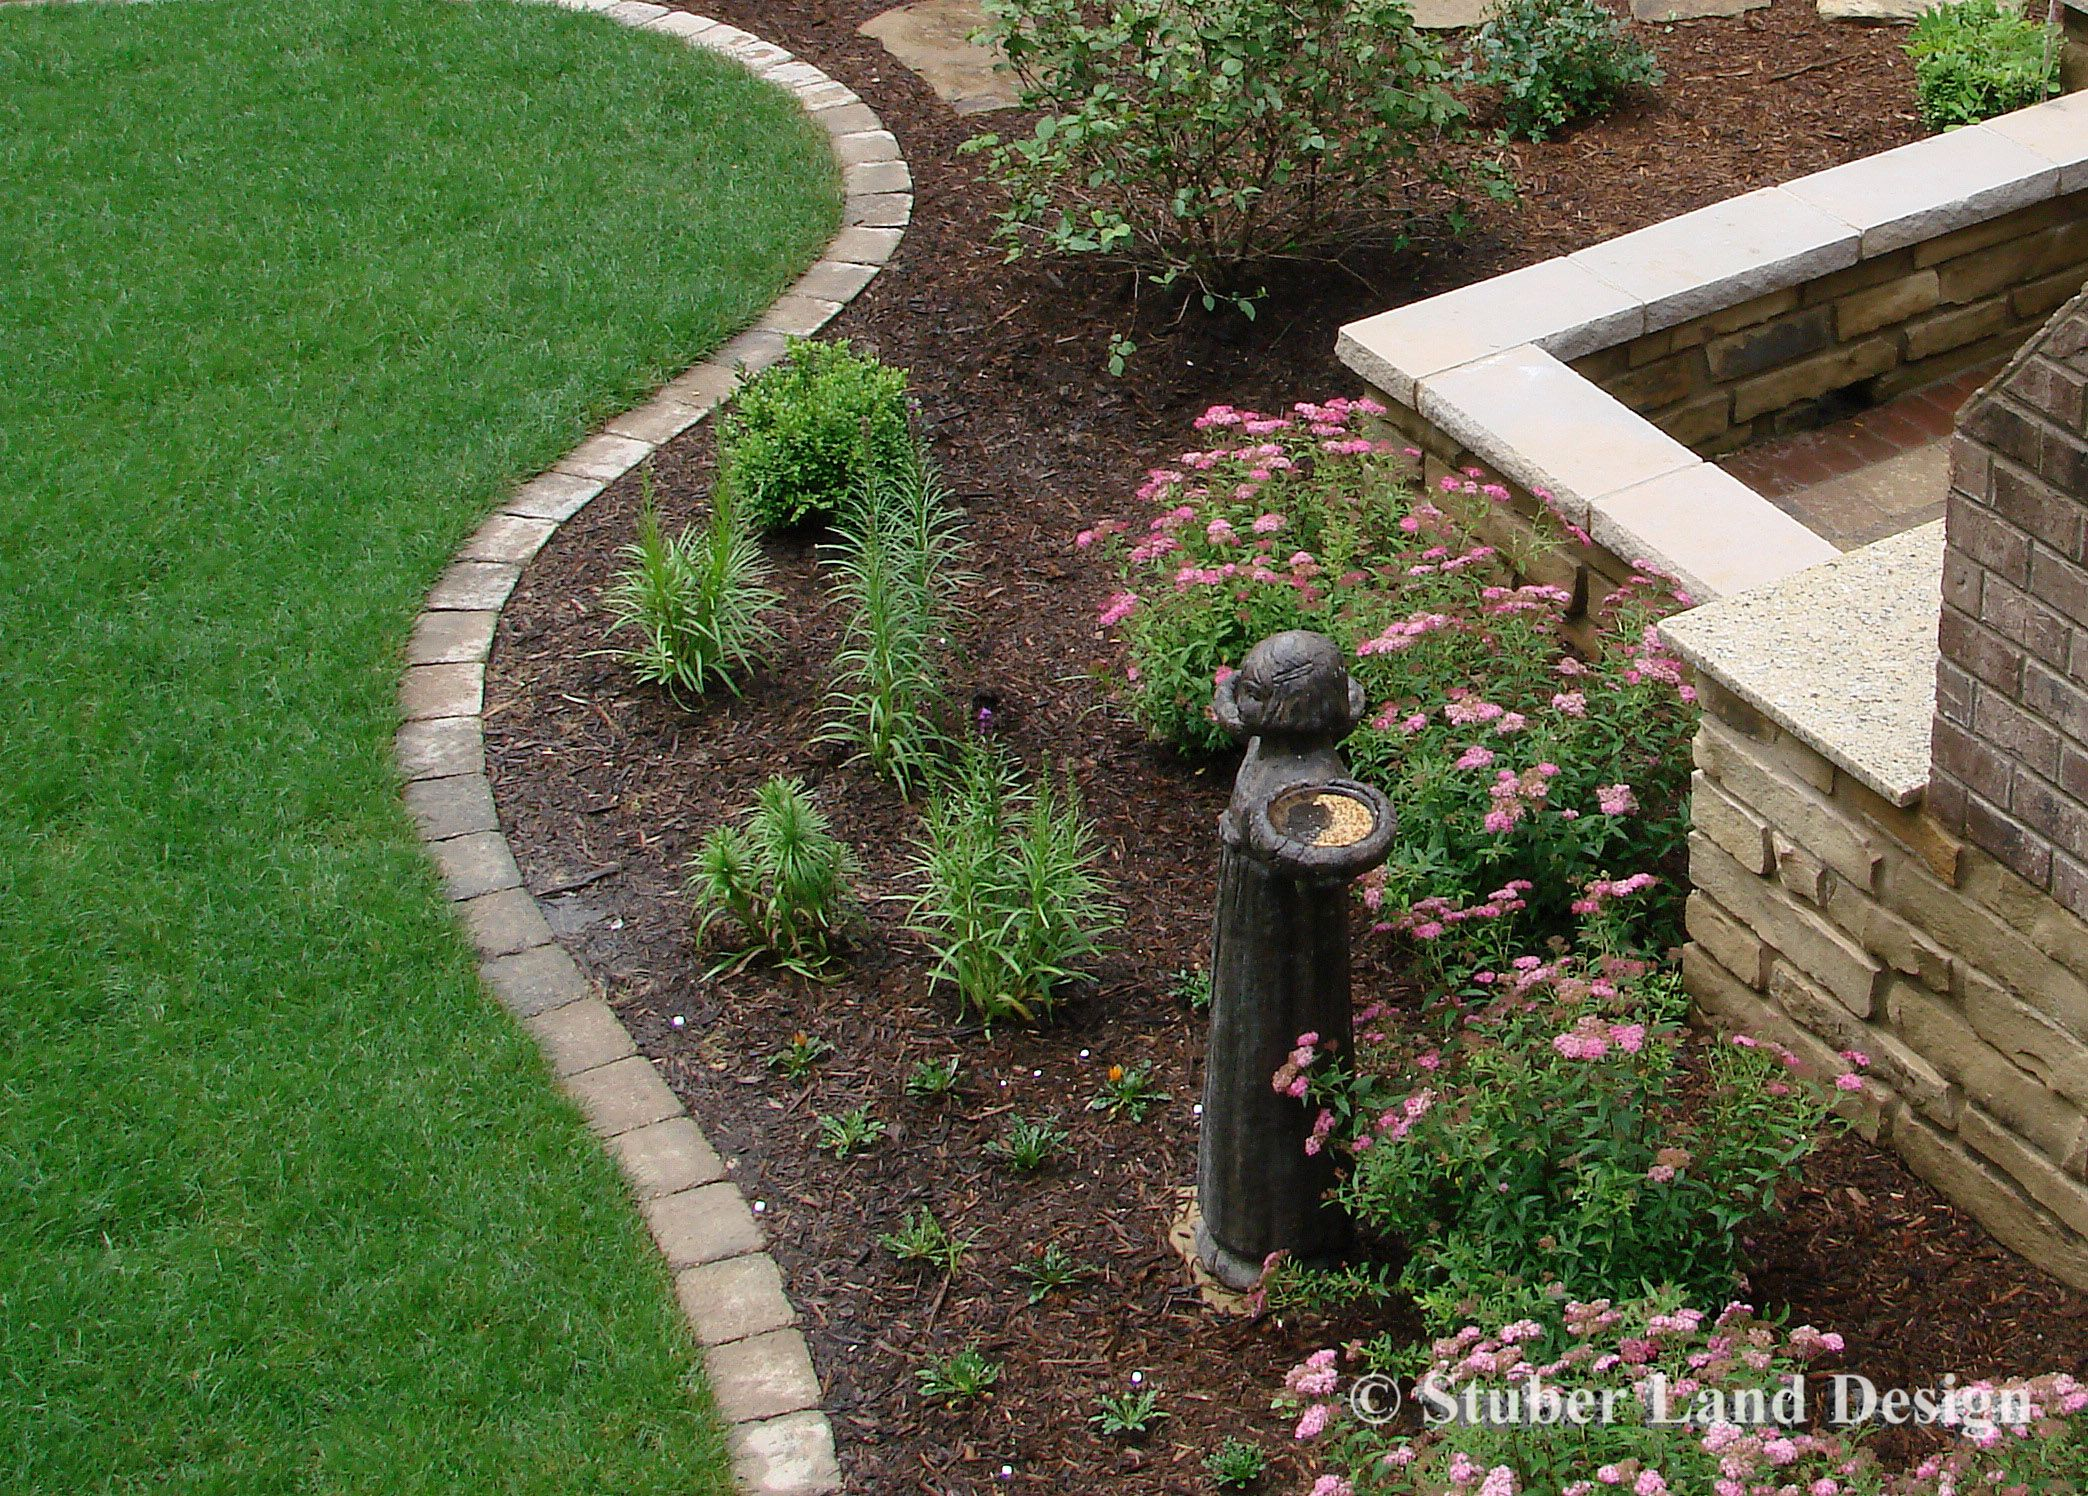 Paver Edging Creates A Good Clean Line To Transition From A Landscape Bed To Lawn Paver Edging Brick Garden Edging Brick Garden